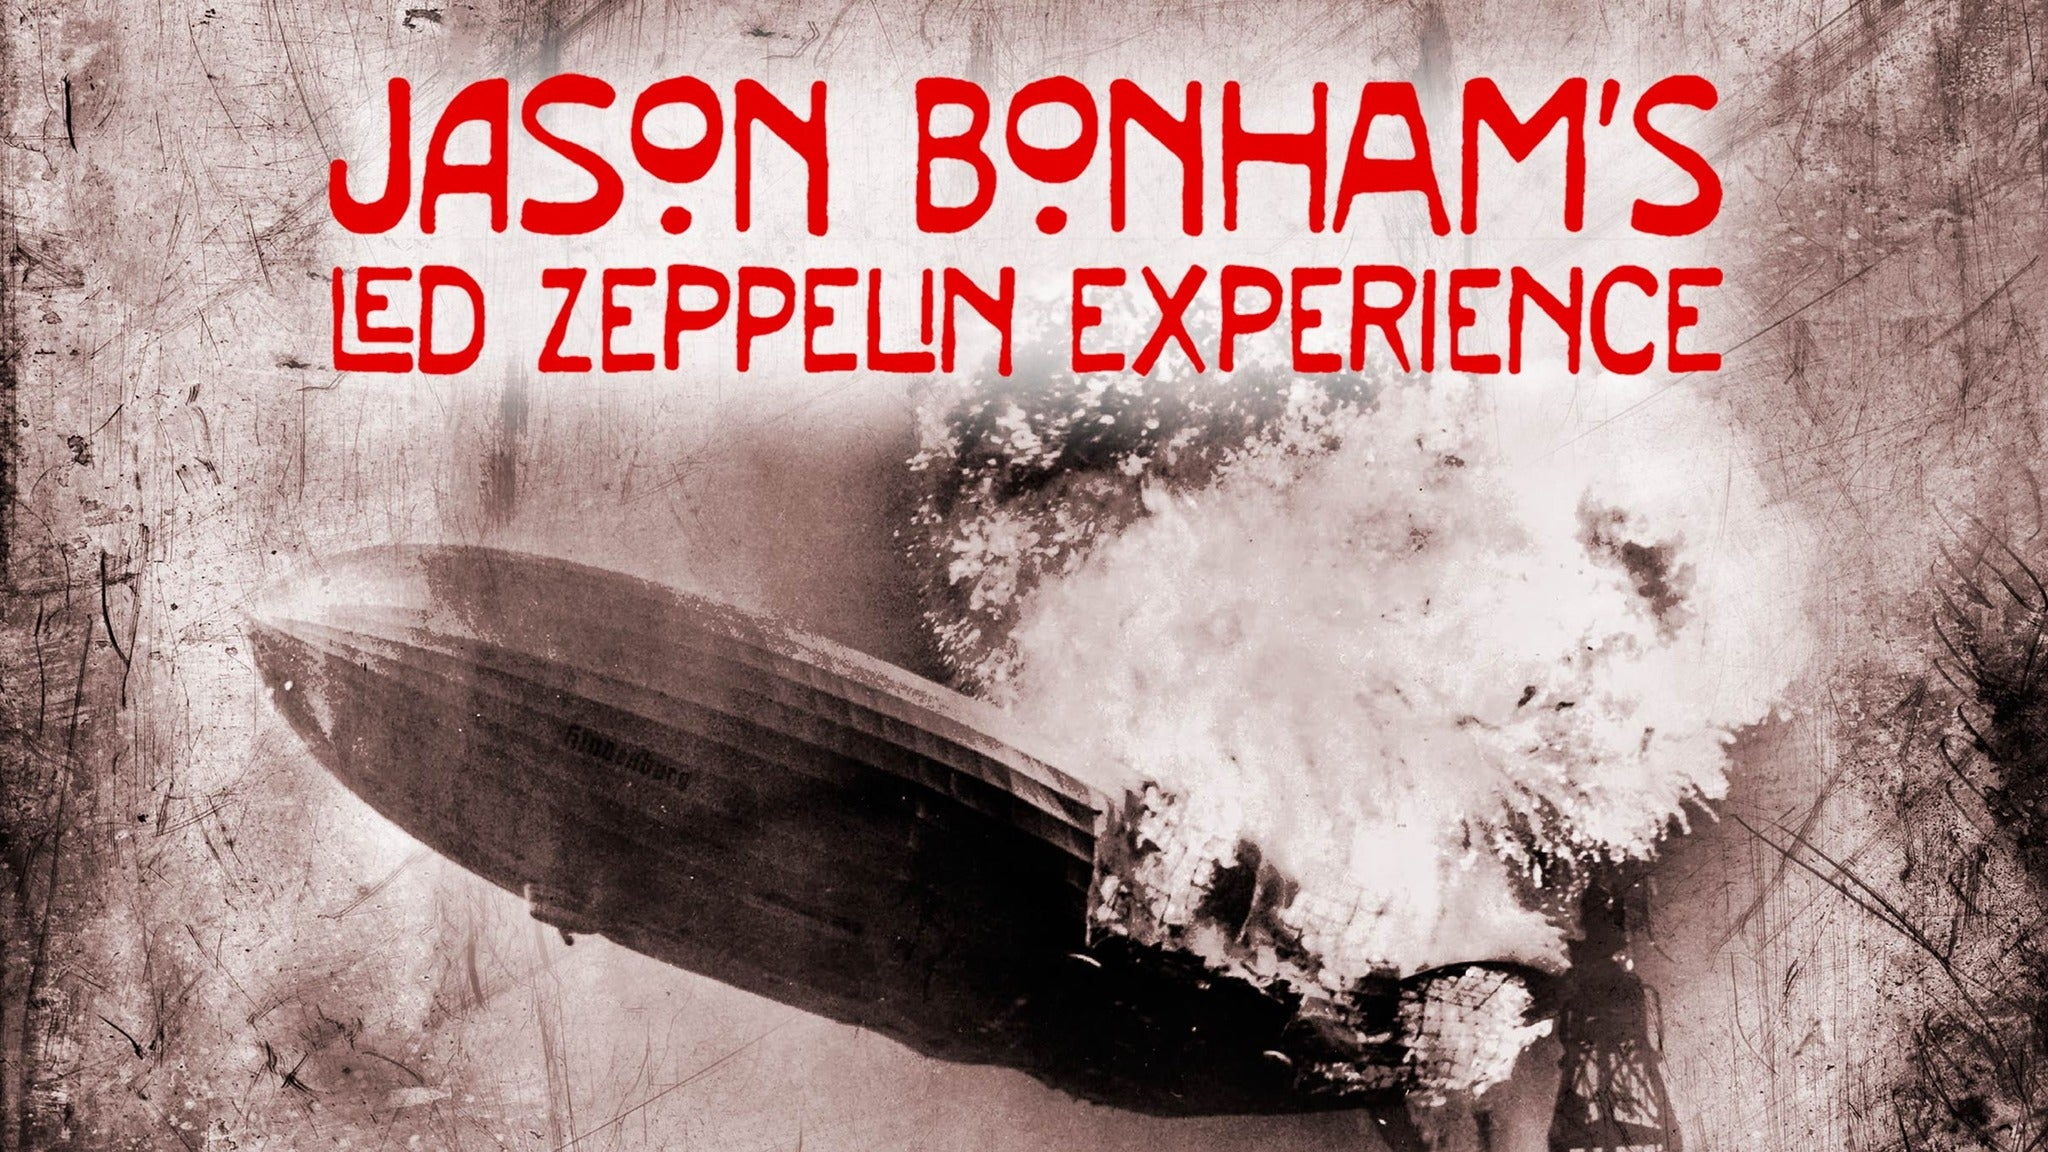 Jason Bonham's Led Zeppelin Experience at Star Plaza Theatre